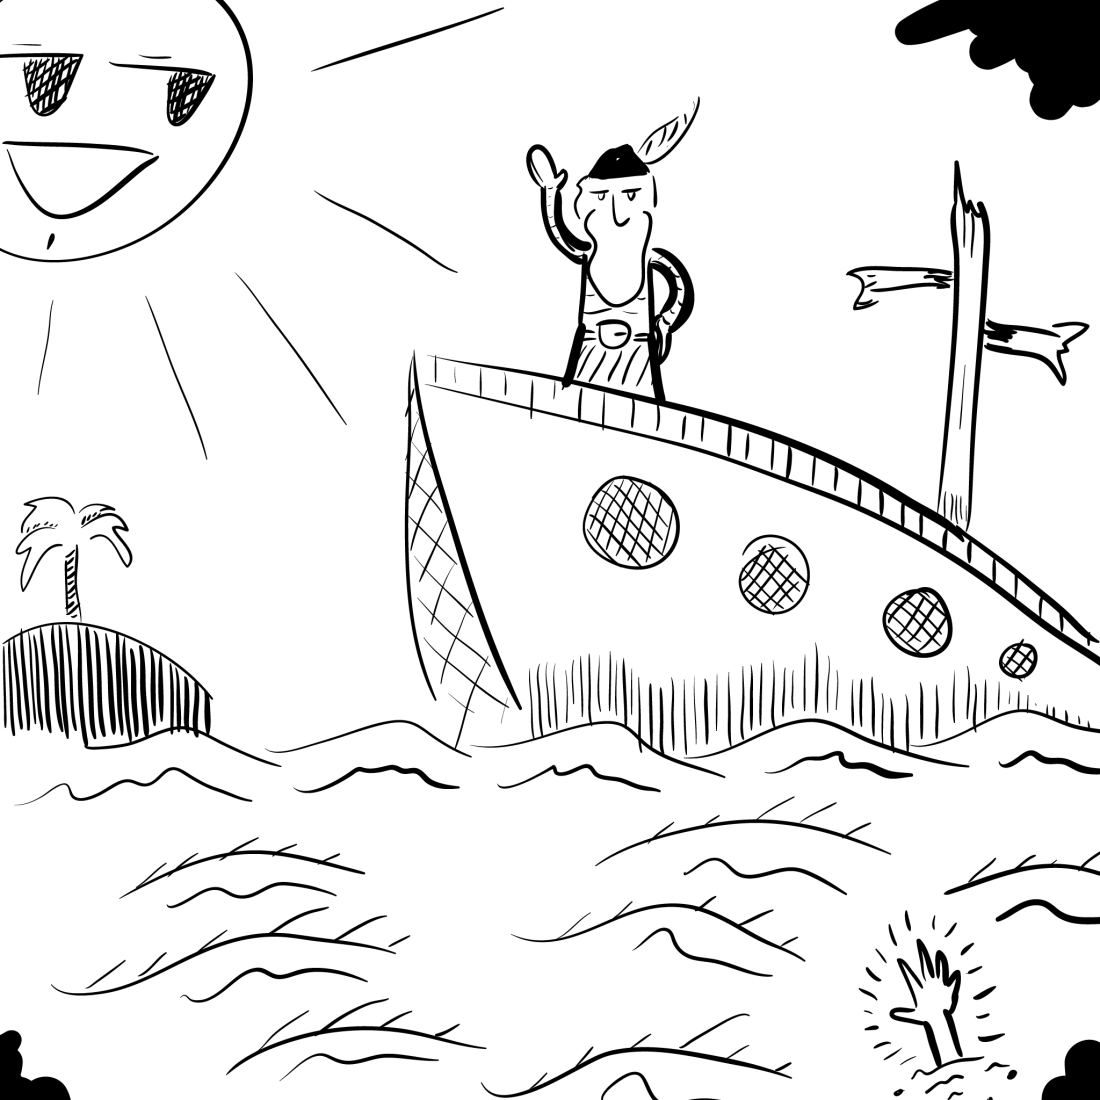 sketch: a ship arriving too late